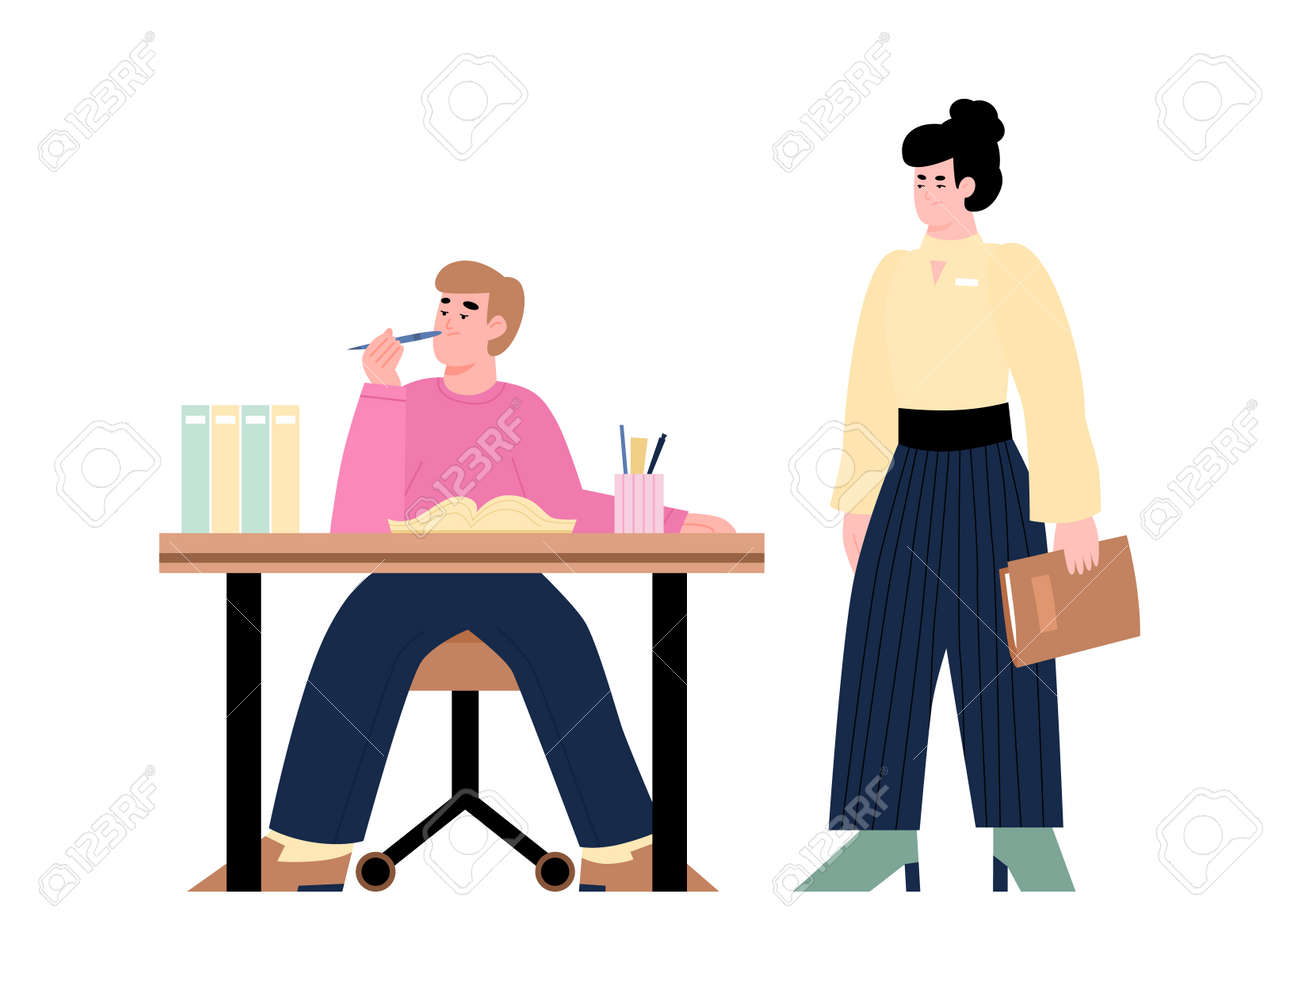 Woman office manager dissatisfied with the work of her subordinate, cartoon vector illustration isolated on white background. Inefficient worker bored at workplace. - 164811567